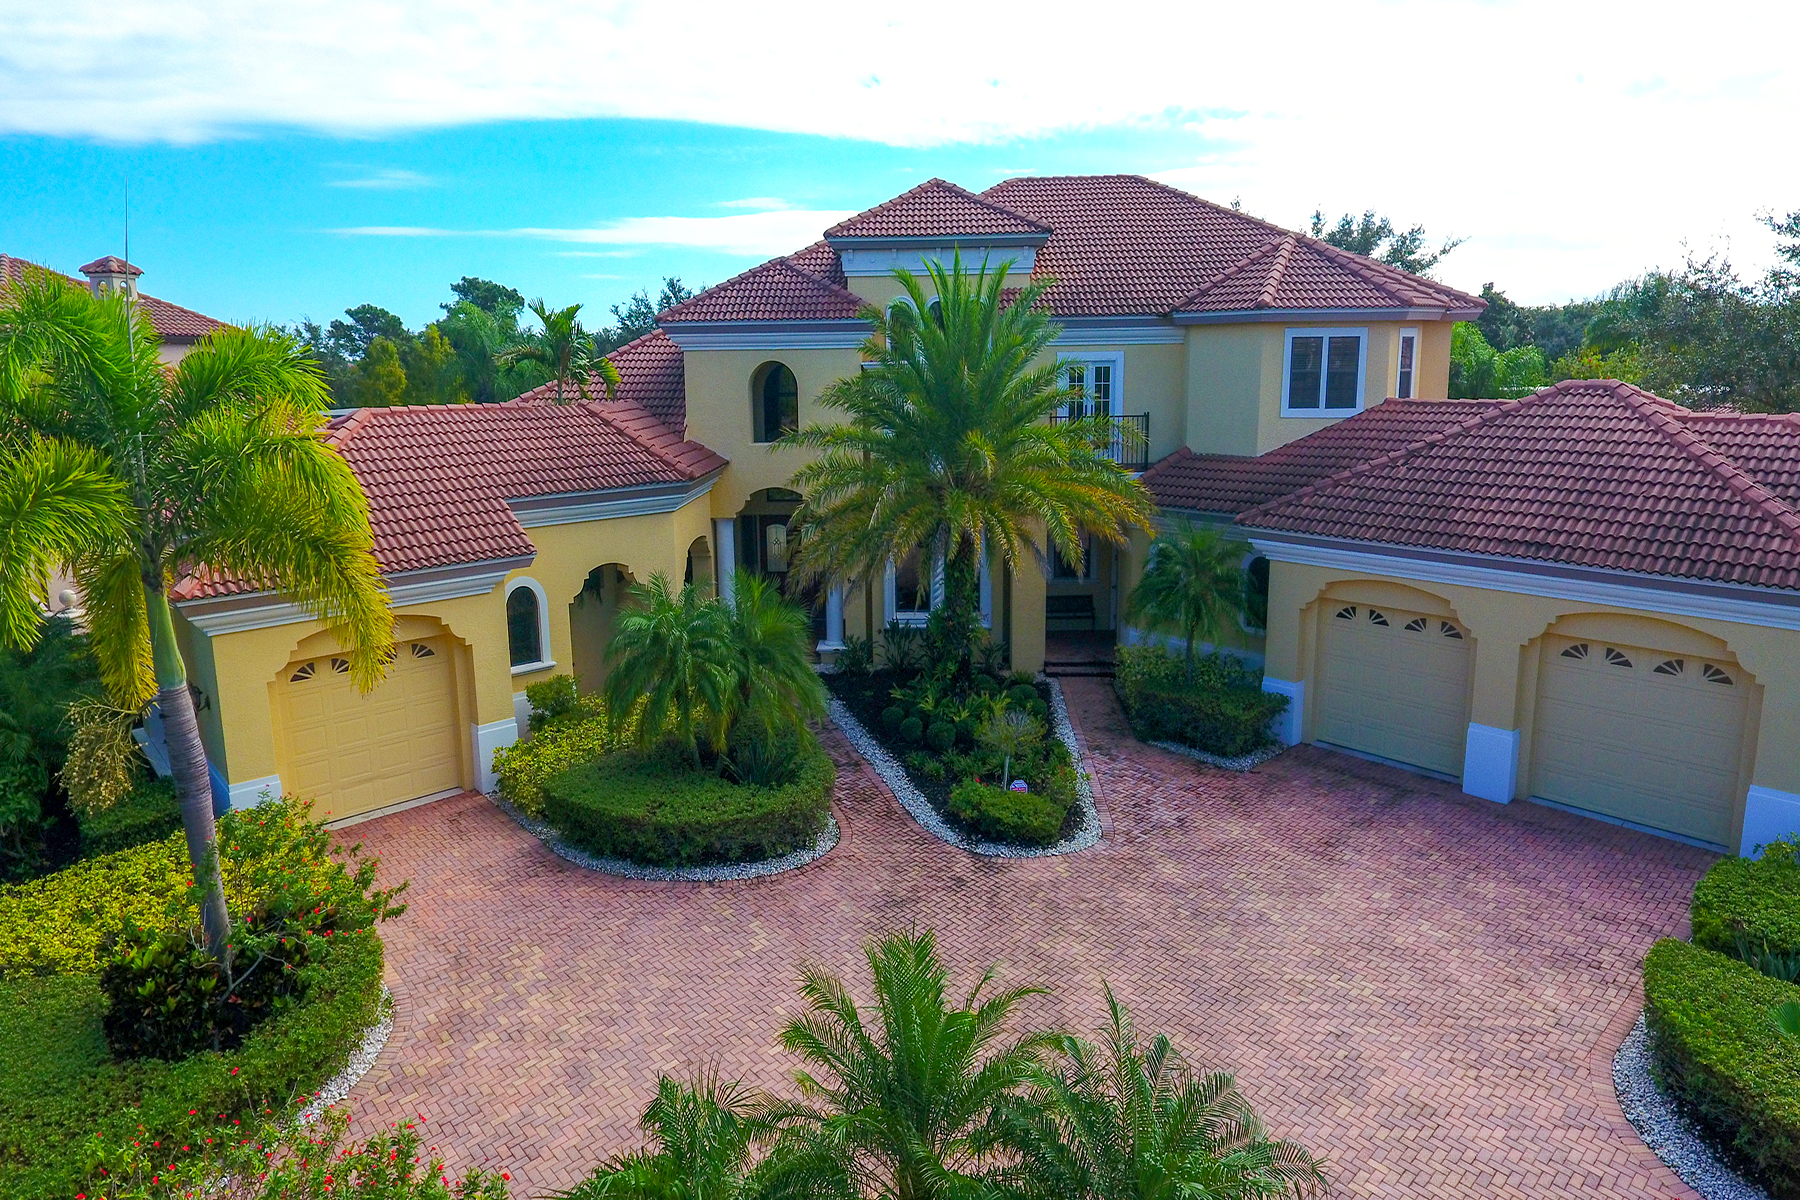 single family homes for Active at LAKEWOOD RANCH COUNTRY CLUB 6815 Belmont Ct Lakewood Ranch, Florida 34202 United States